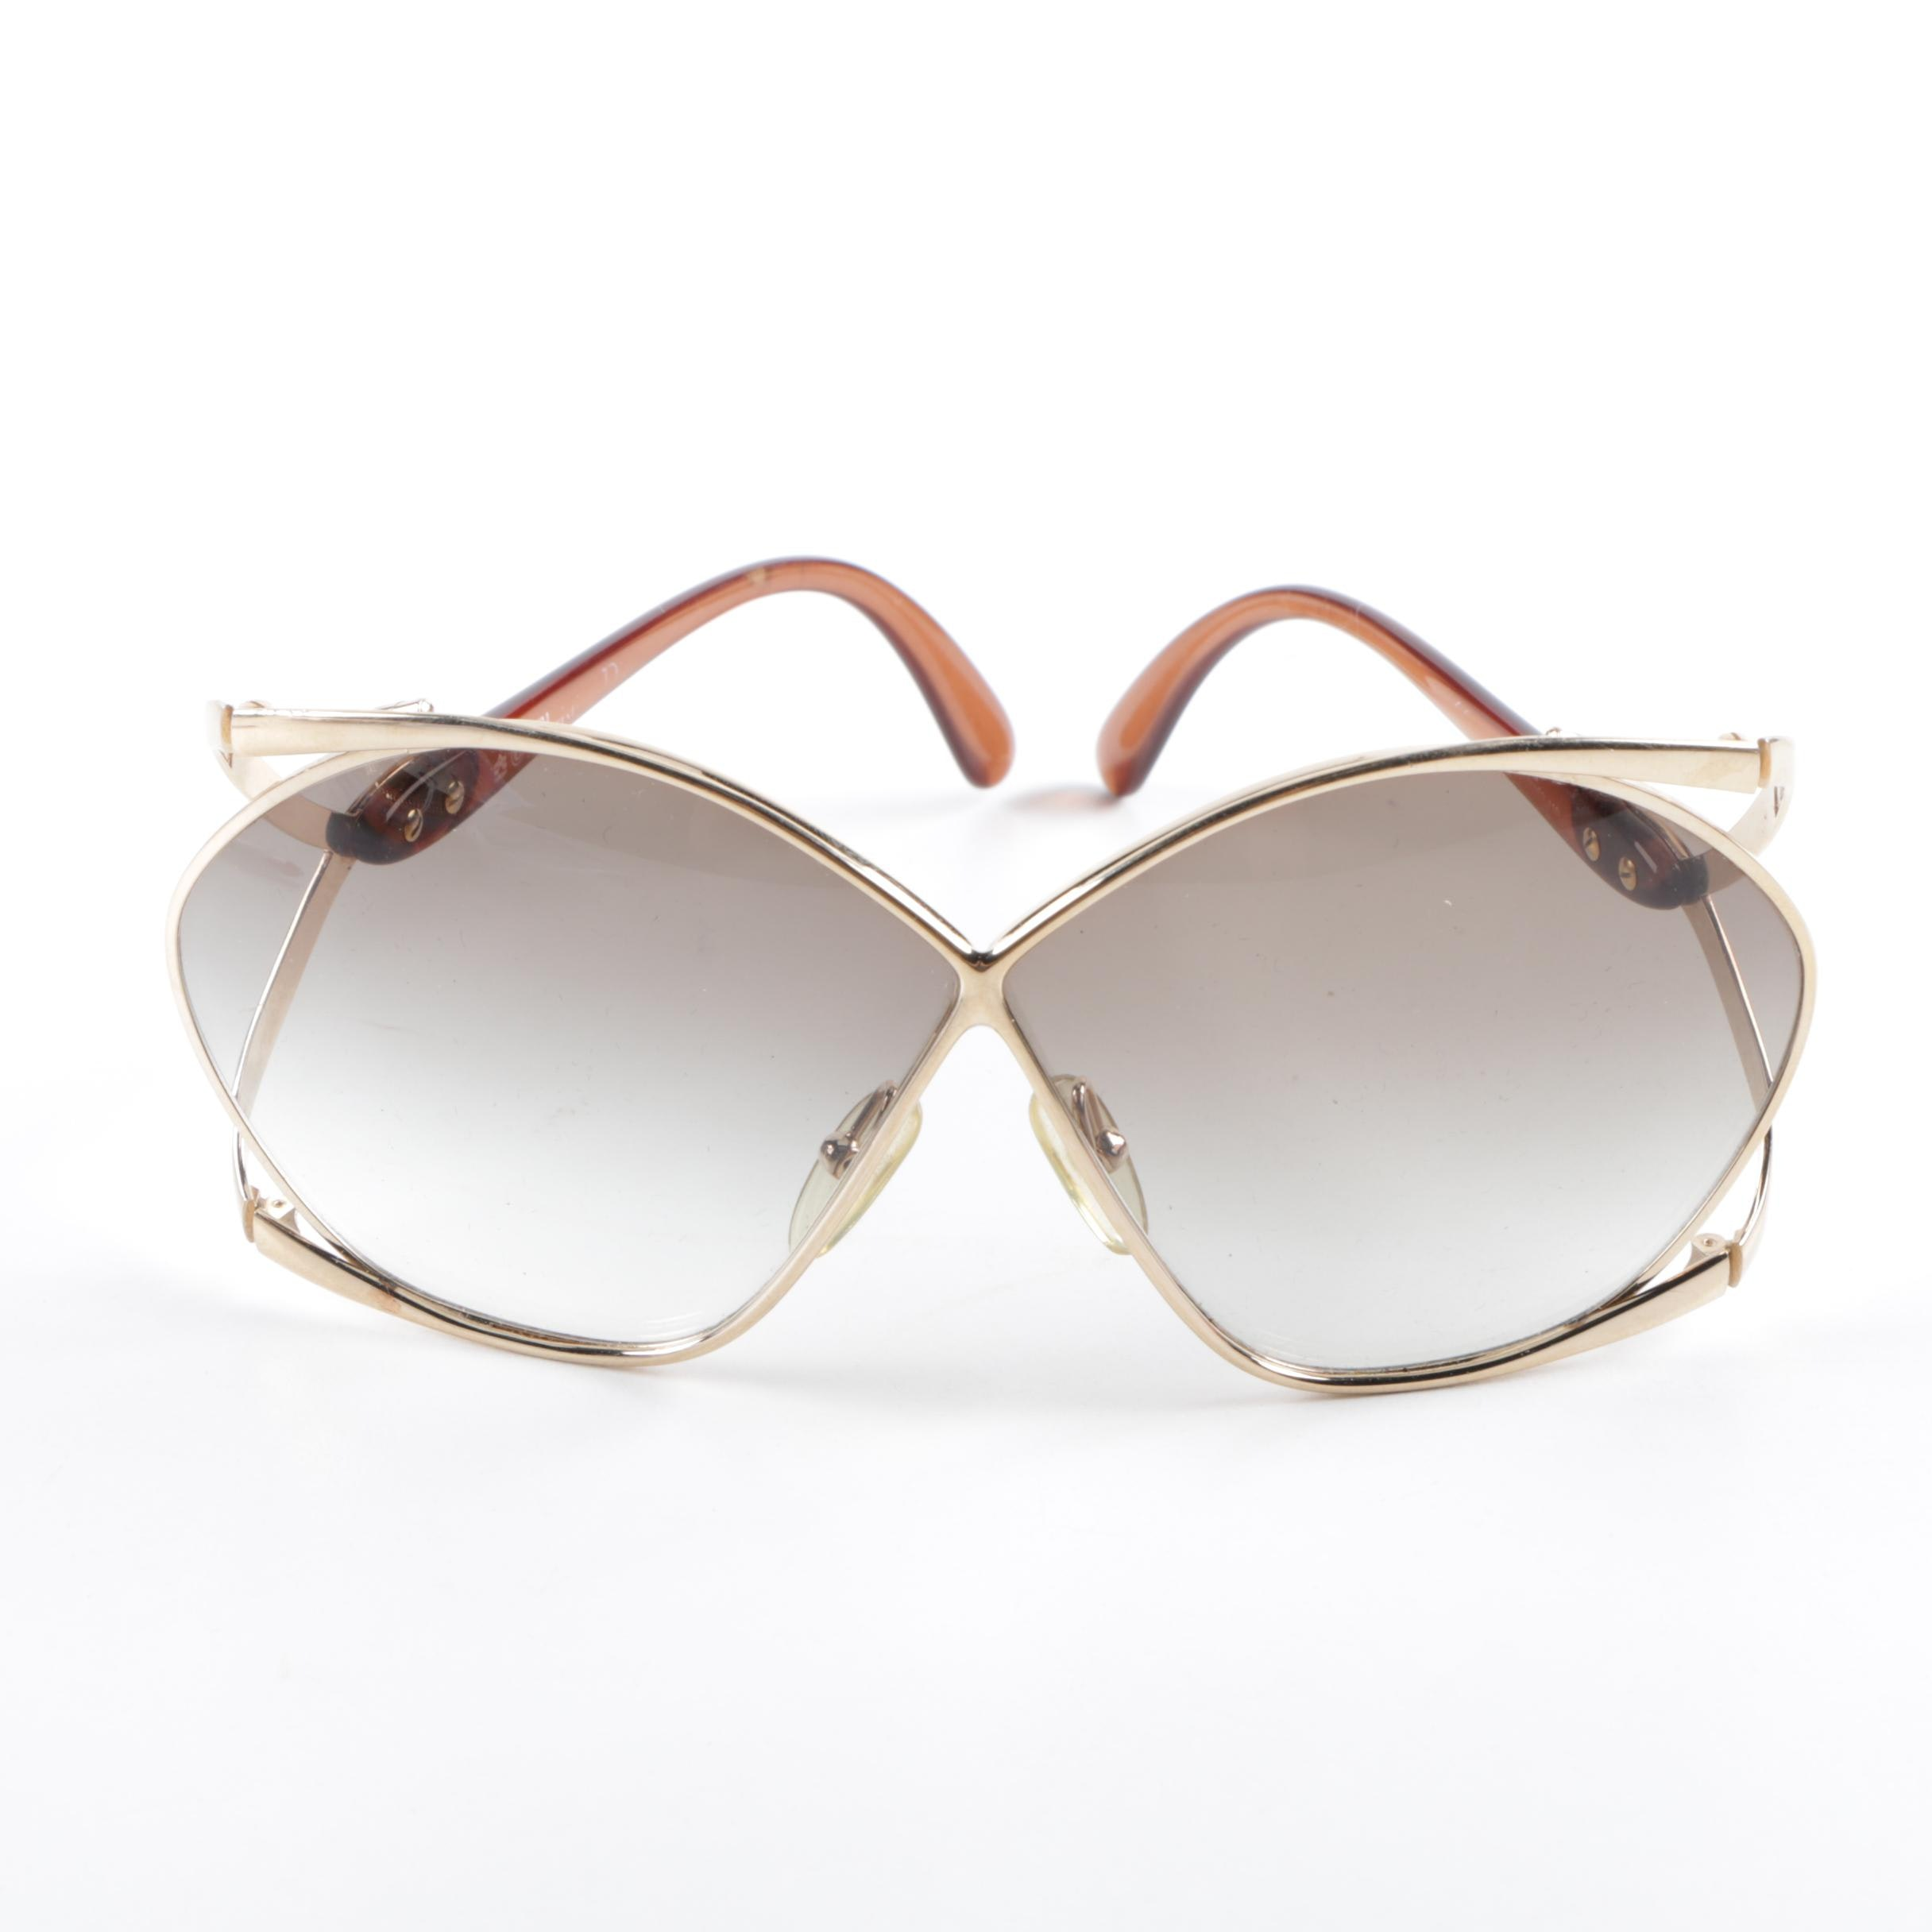 1990s Christian Dior Butterfly Sunglasses